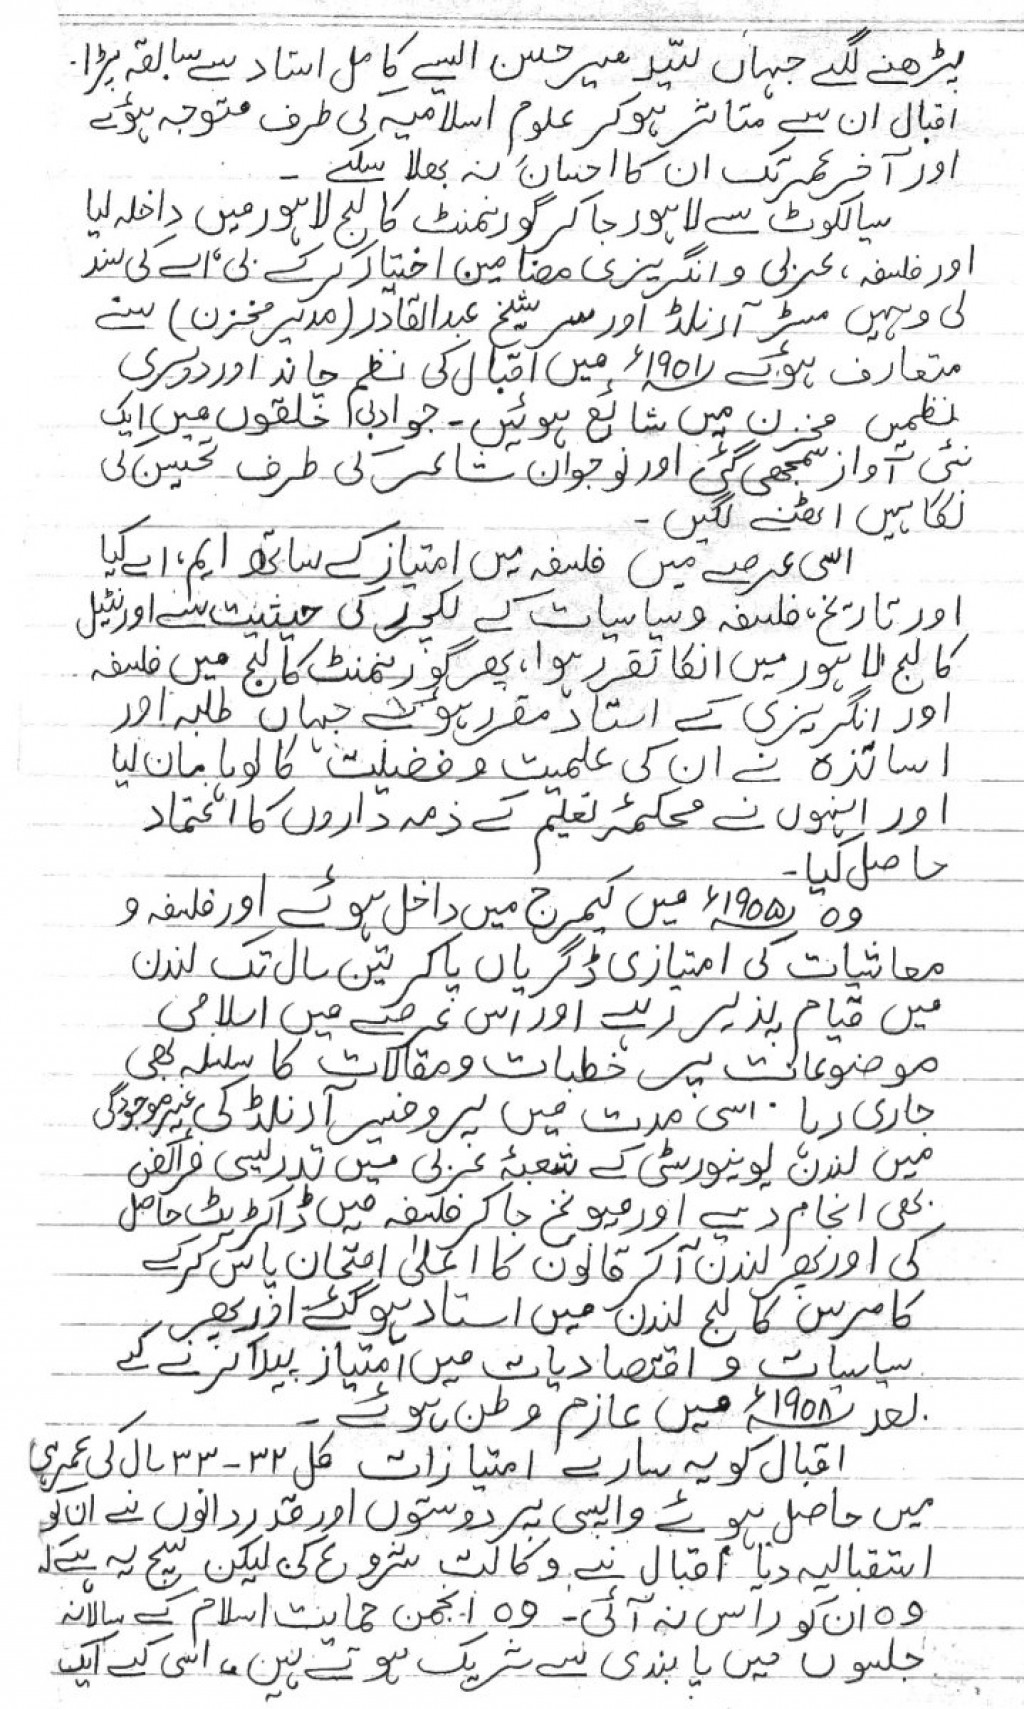 008 Jpg Essay Example Urdu Allama Dreaded Iqbal On In For Class 10 With Poetry Ka Shaheen Headings And Large